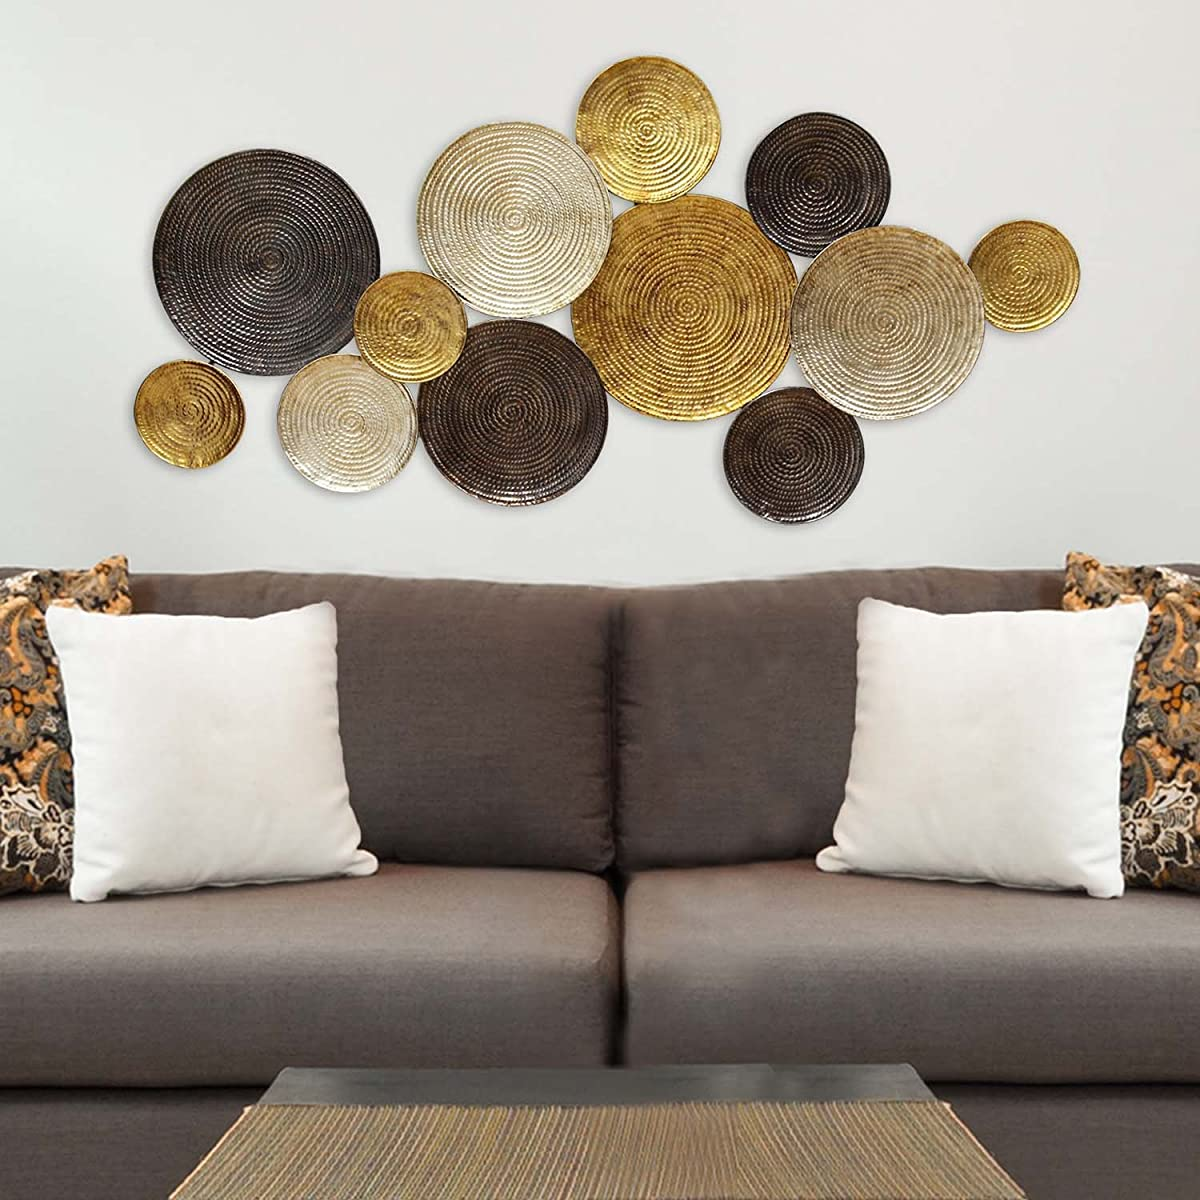 Stratton Home Decor SHD0067 Multi Circles Wall Decor